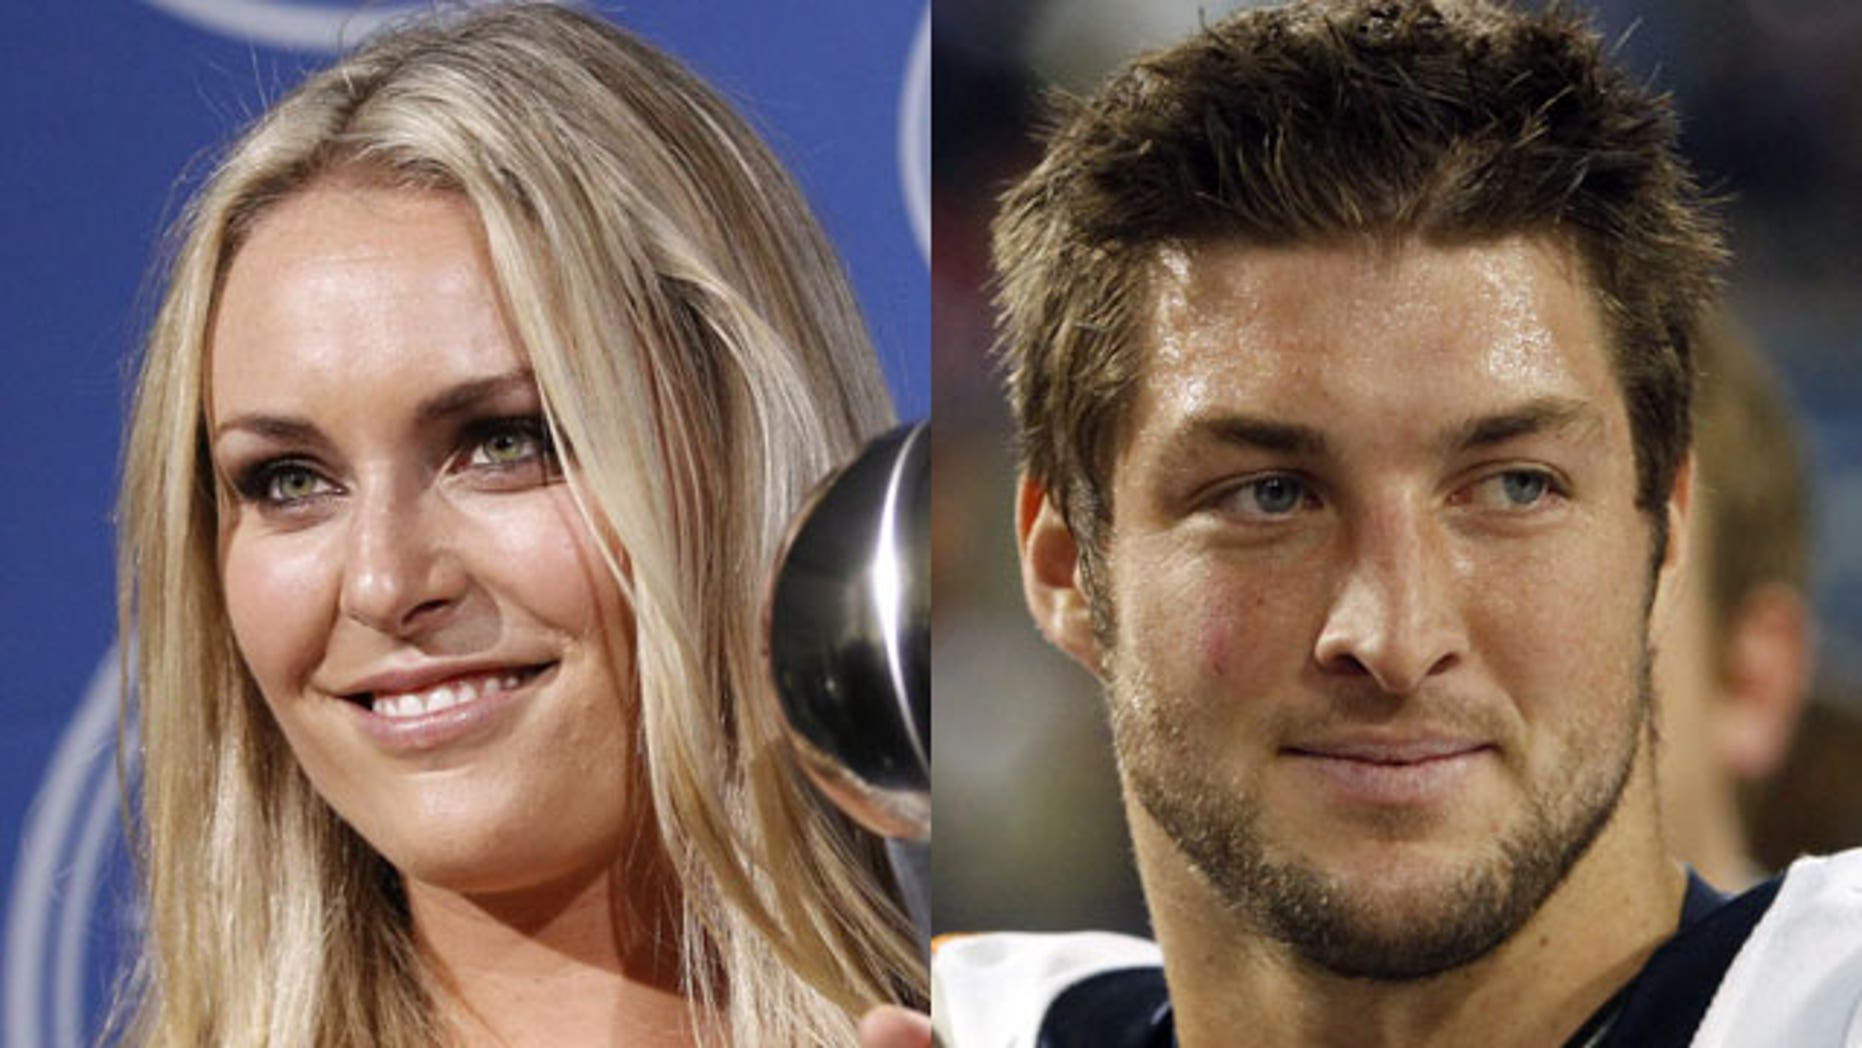 Skier Lindsey Vonn Seeks To Quell Rumors She Is Dating Broncos Quarterback Tim Tebow Fox News His zodiac sign is sagittarius. is dating broncos quarterback tim tebow